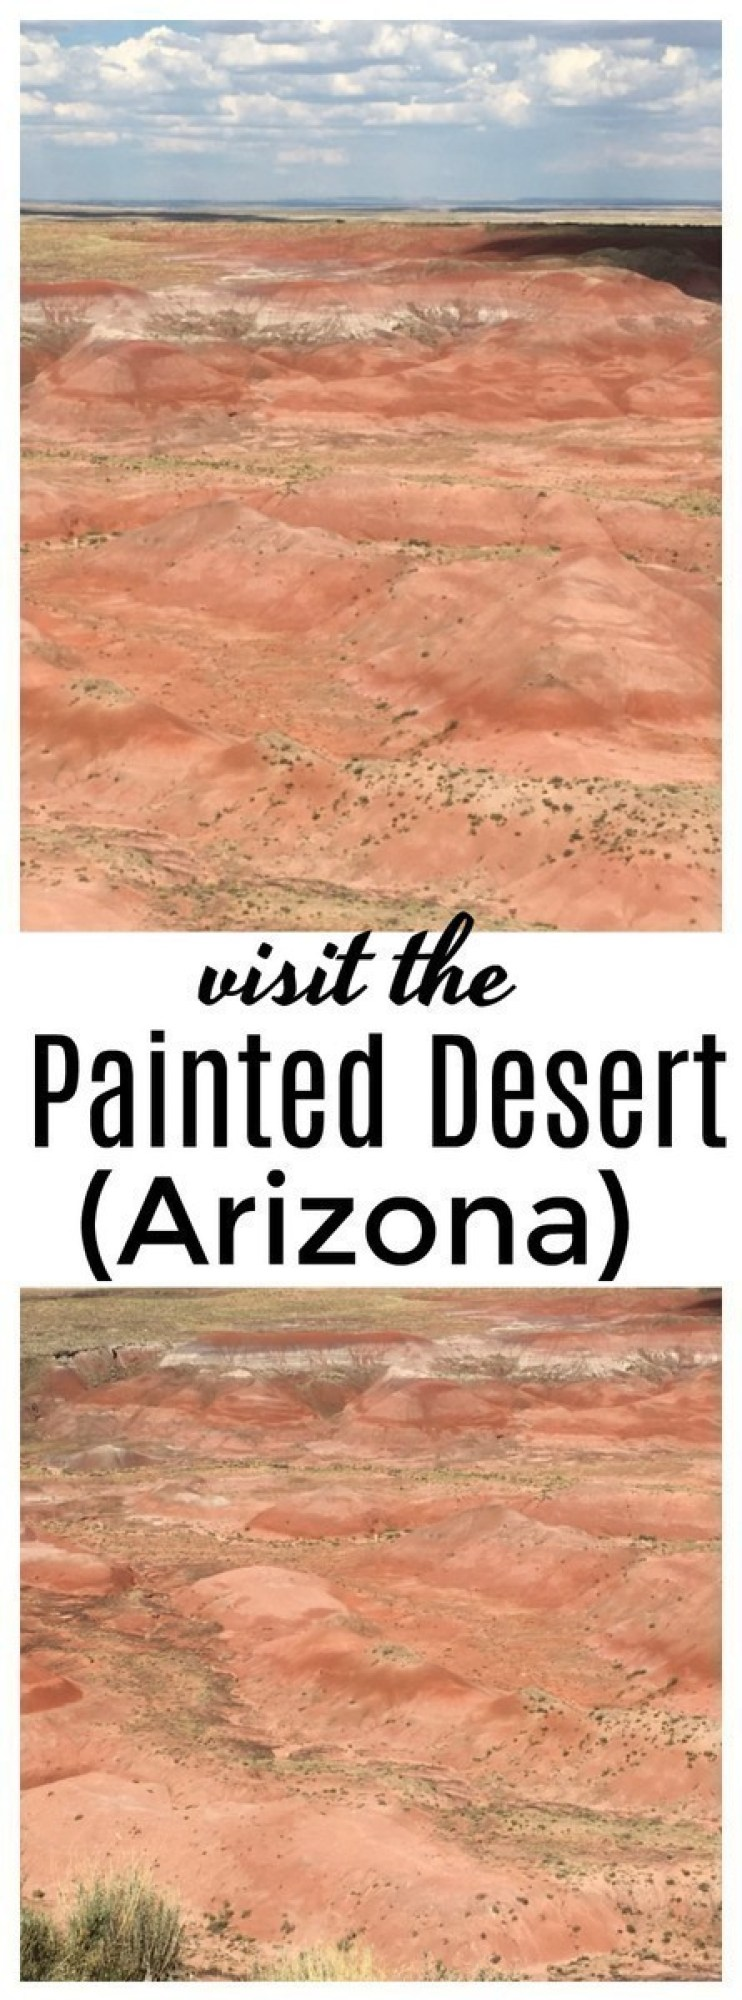 The Painted Desert is a beautiful desert of badlands in the Four Corners area - it runs from the east end of the Grand Canyon National Park southeast to the Petrified Forest National Park.